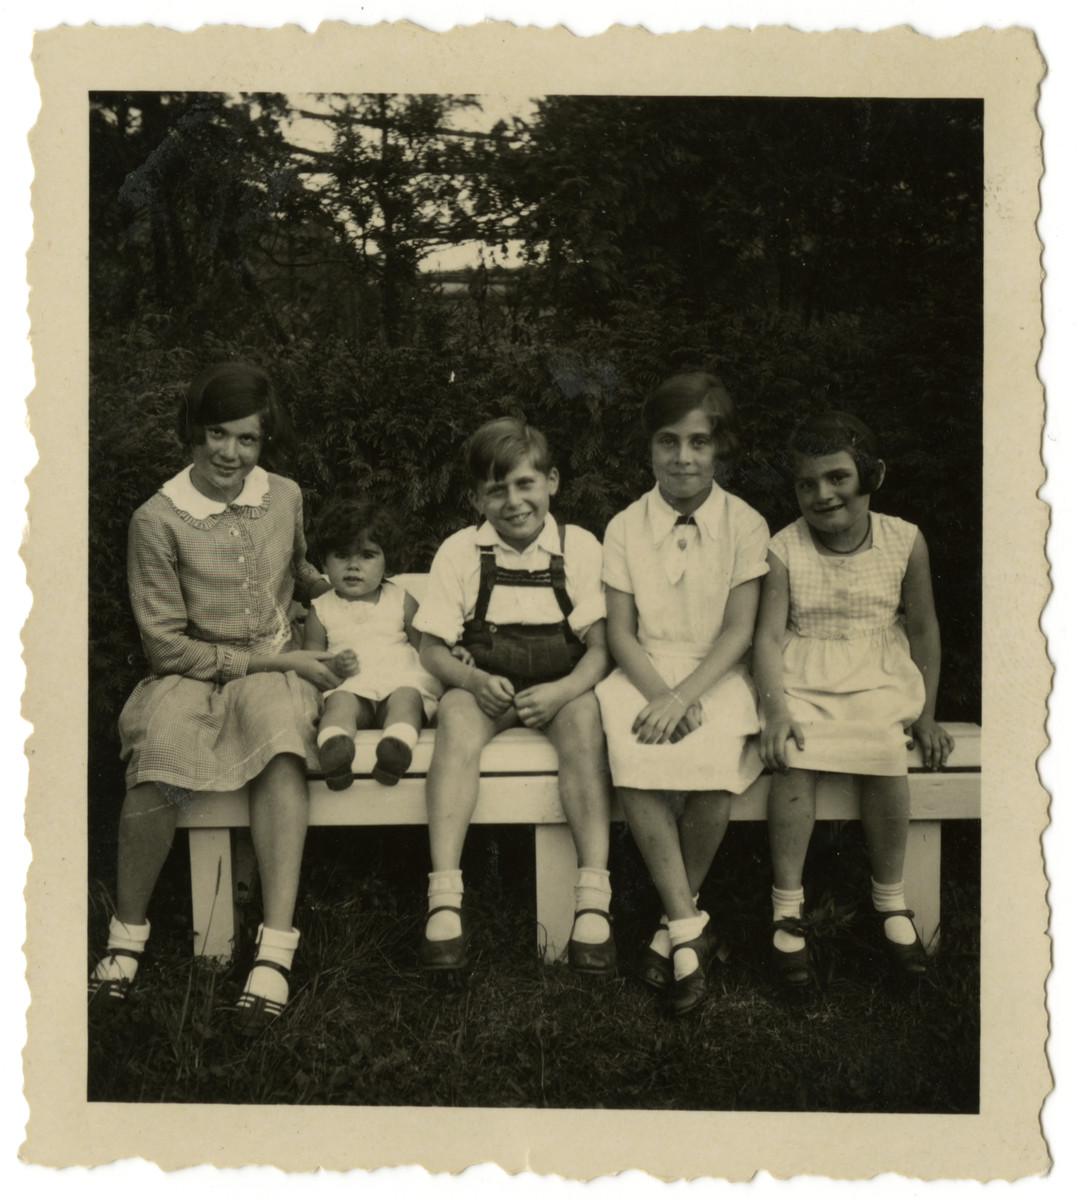 Children celebrate the second birthday of Inge Adler, a cousin of the Loeb girls.  Inge Adler second from left.  Clare Loeb second from right.  Hilde Loeb far right.